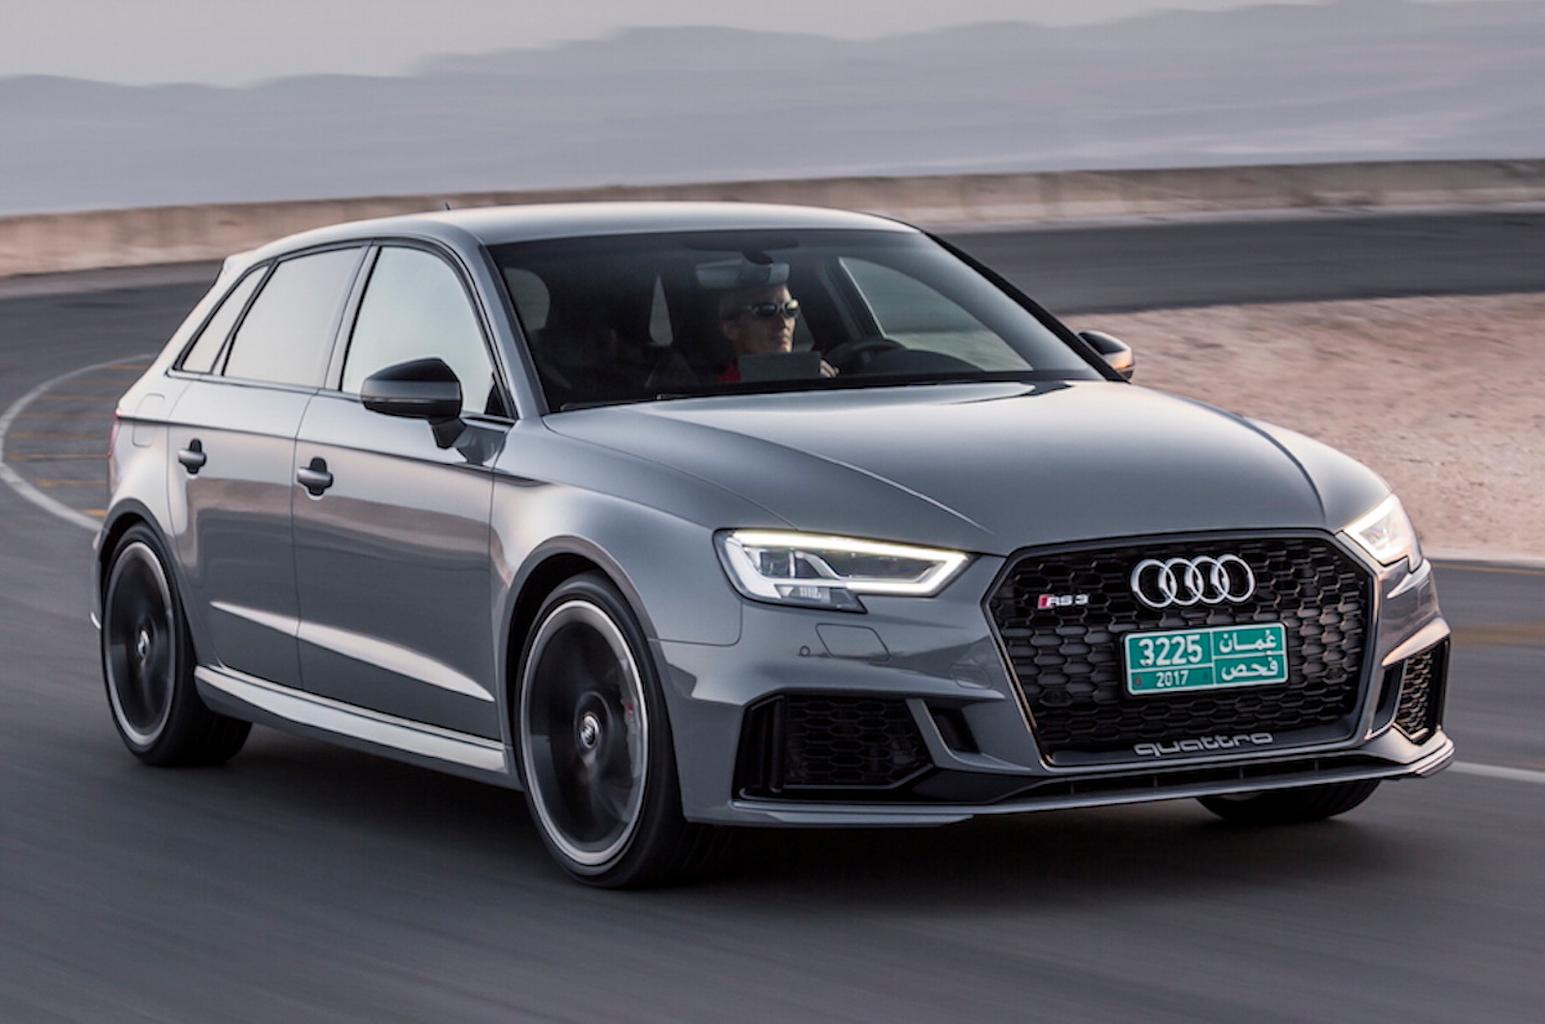 Audi RS3 Sportback 2017 review verdict and specs